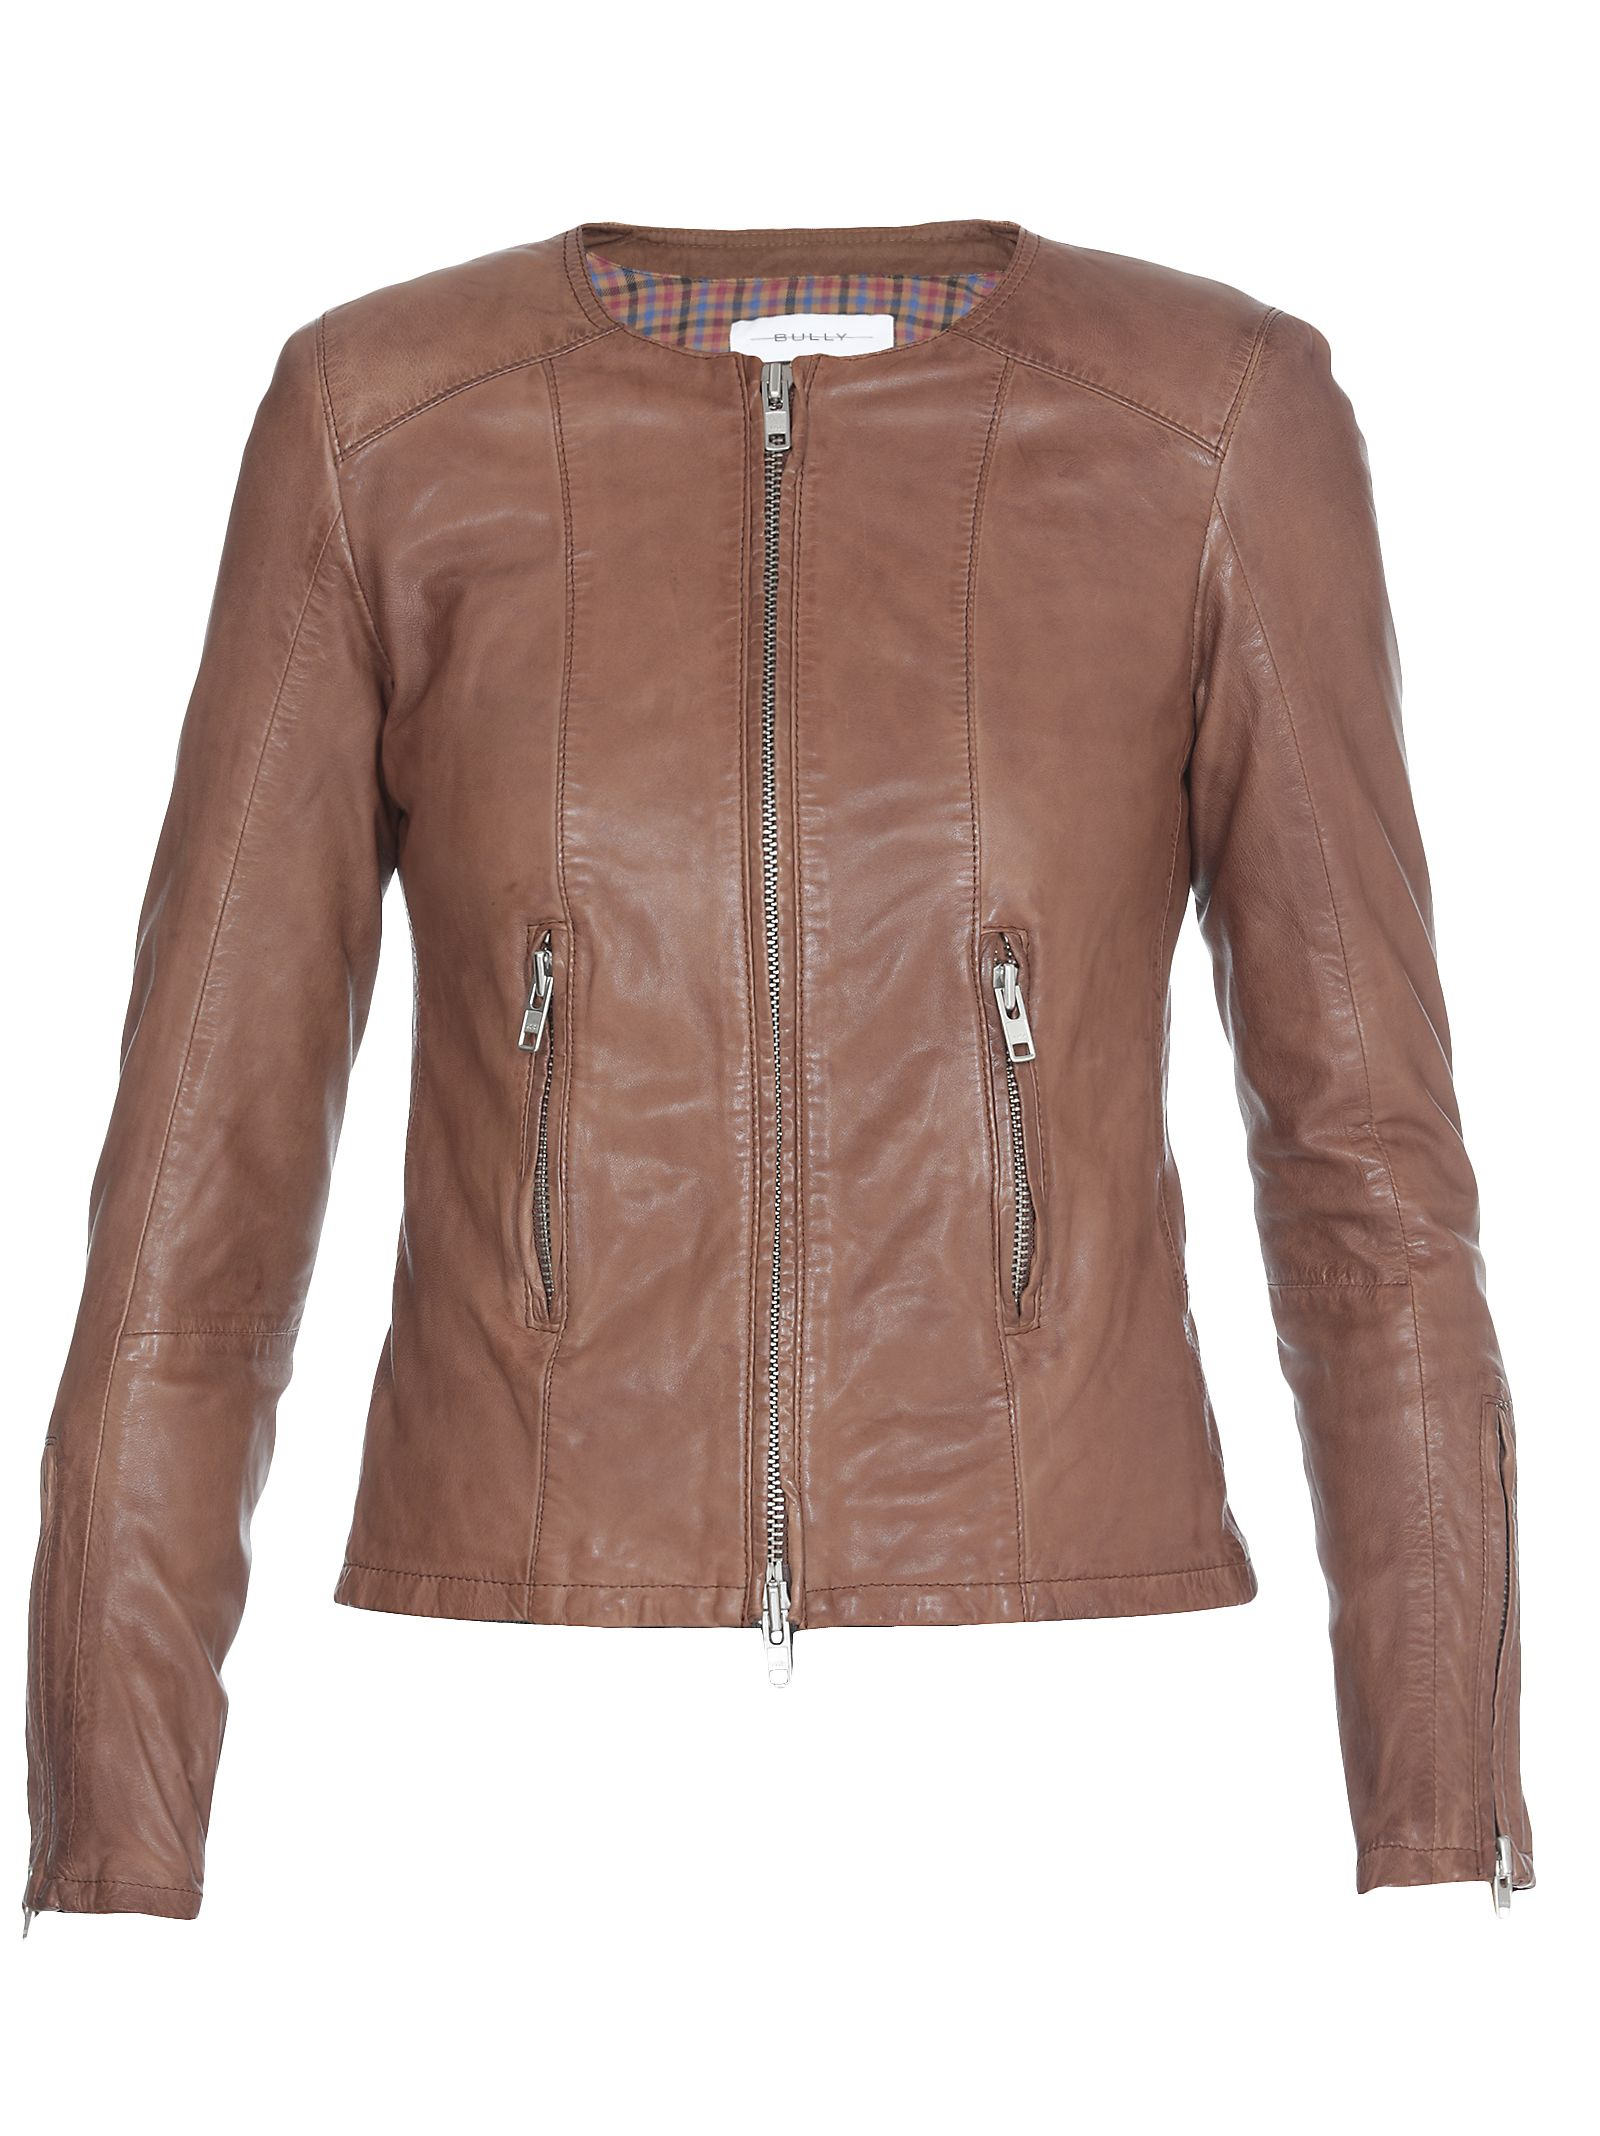 BULLY Leather Jacket in Cuoio